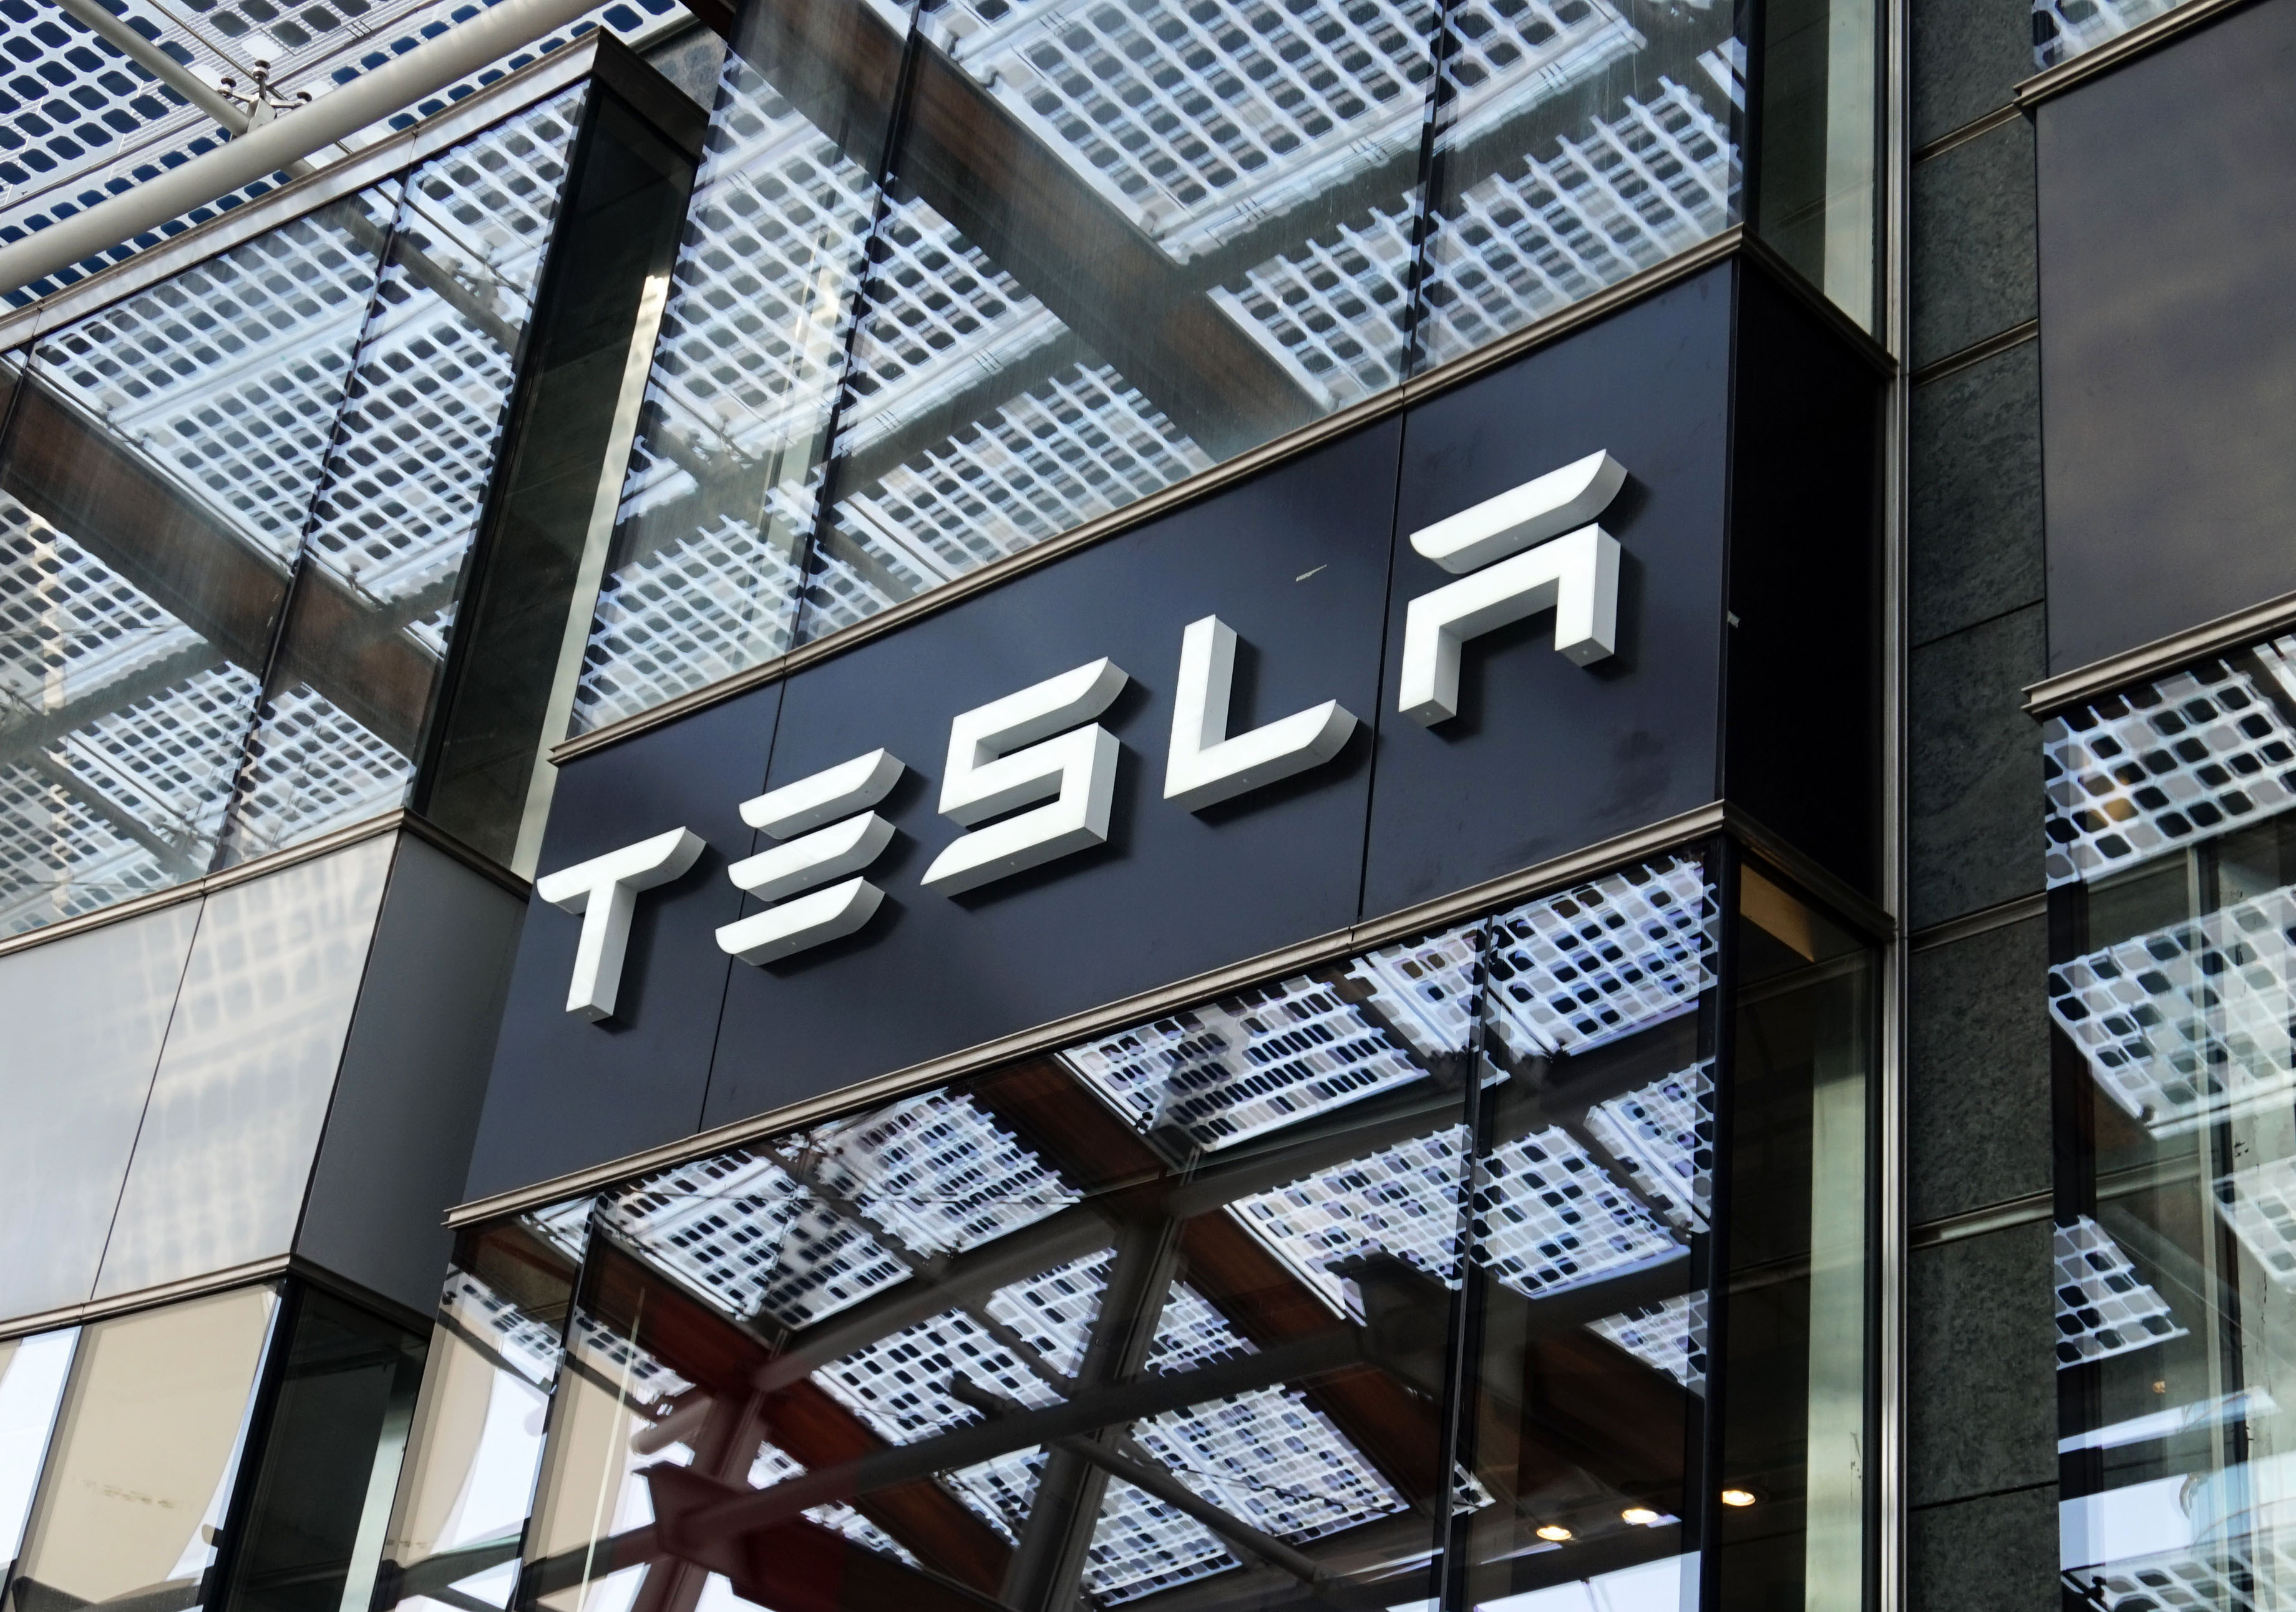 Elon Musk Said Tesla Was 'Single-Digit Weeks' From Death - Where Are The Disclosures?